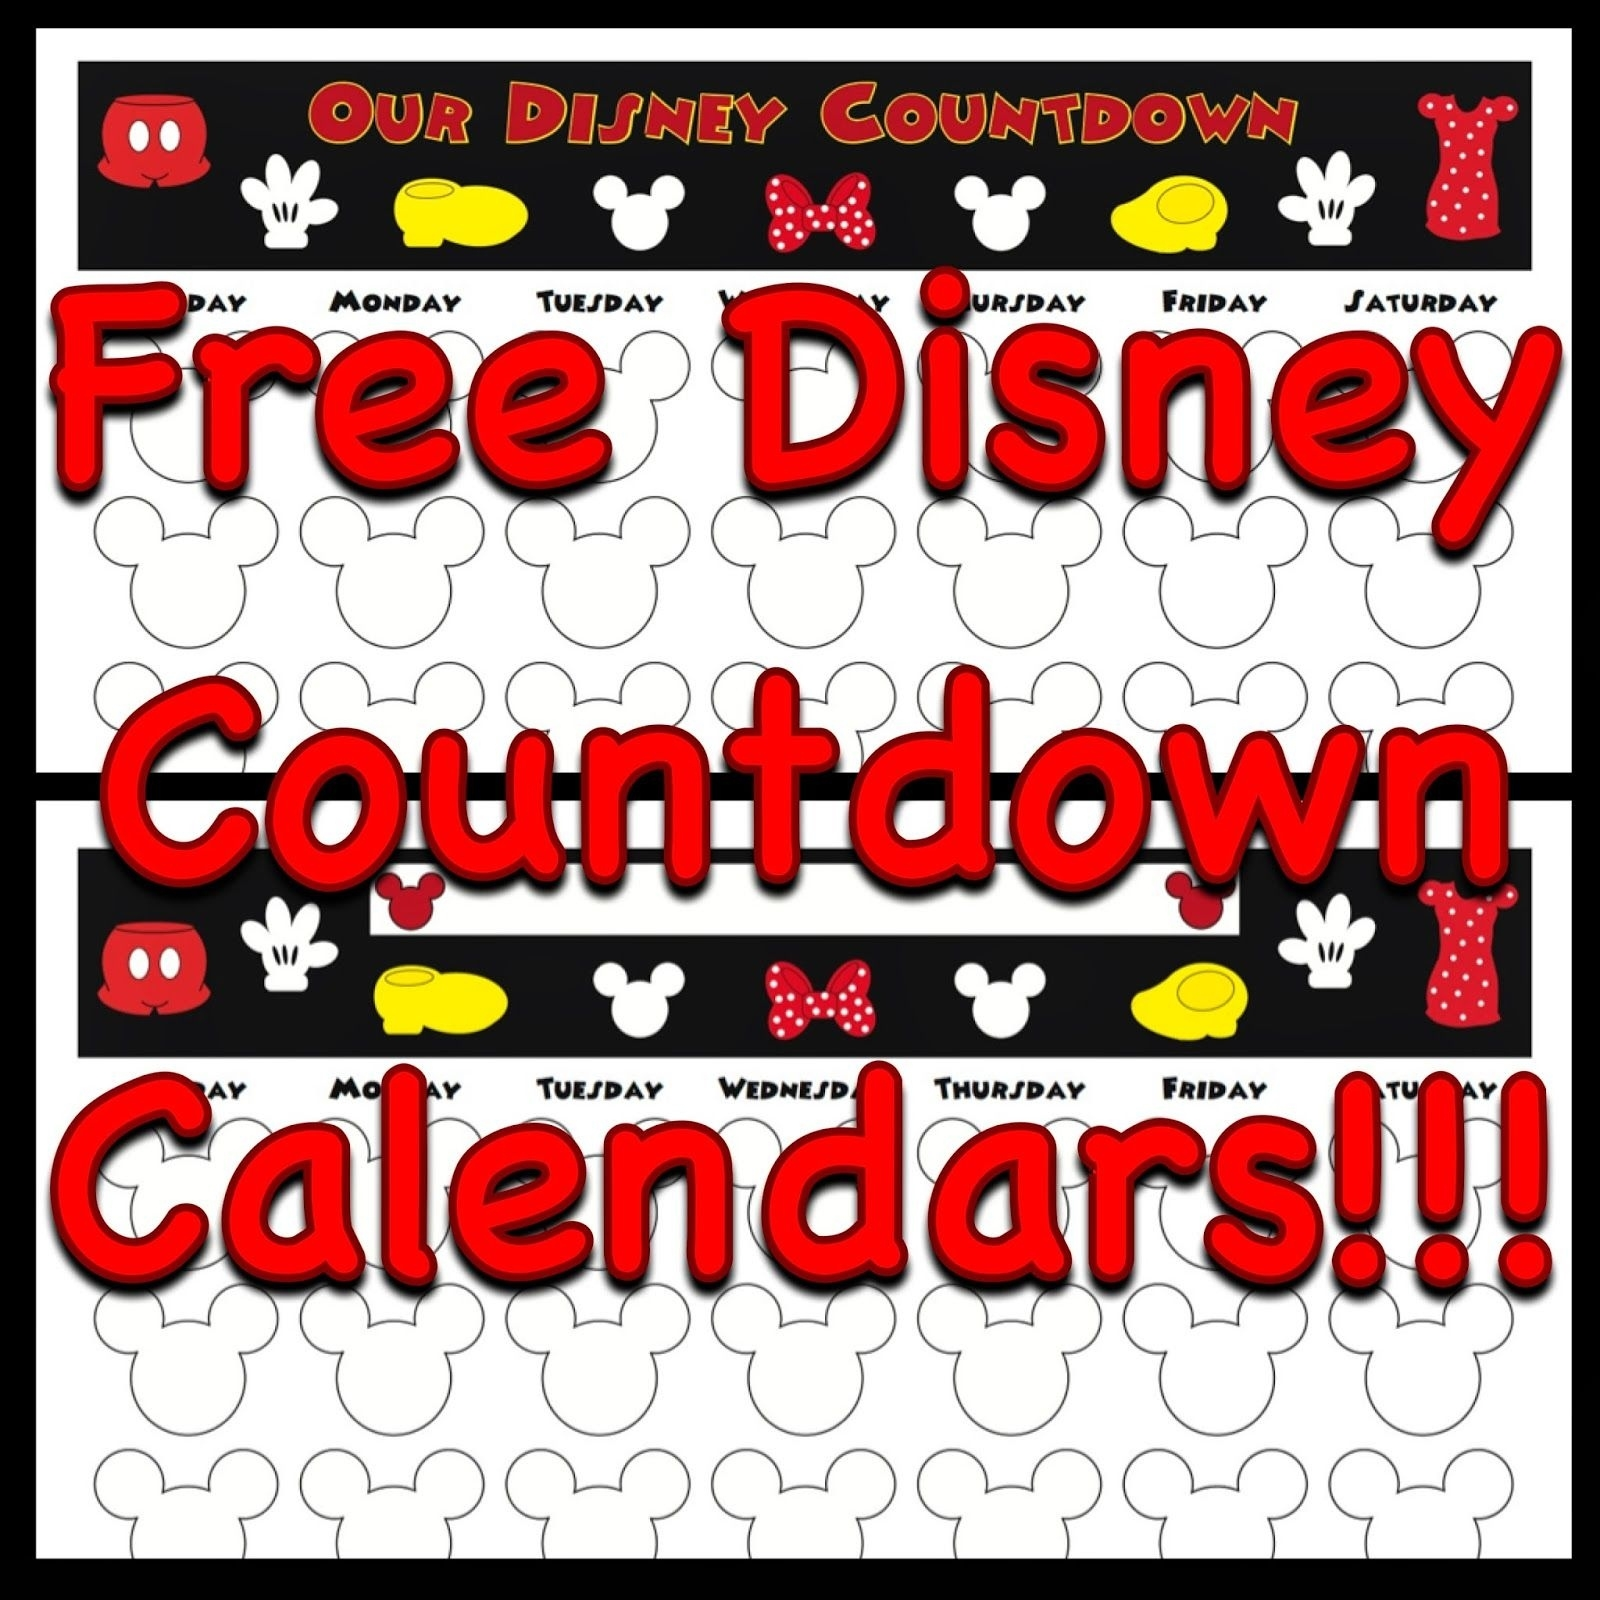 Free, Printable Countdown Calendars To Use For Your Next Dashing Printable Count Down To Disney